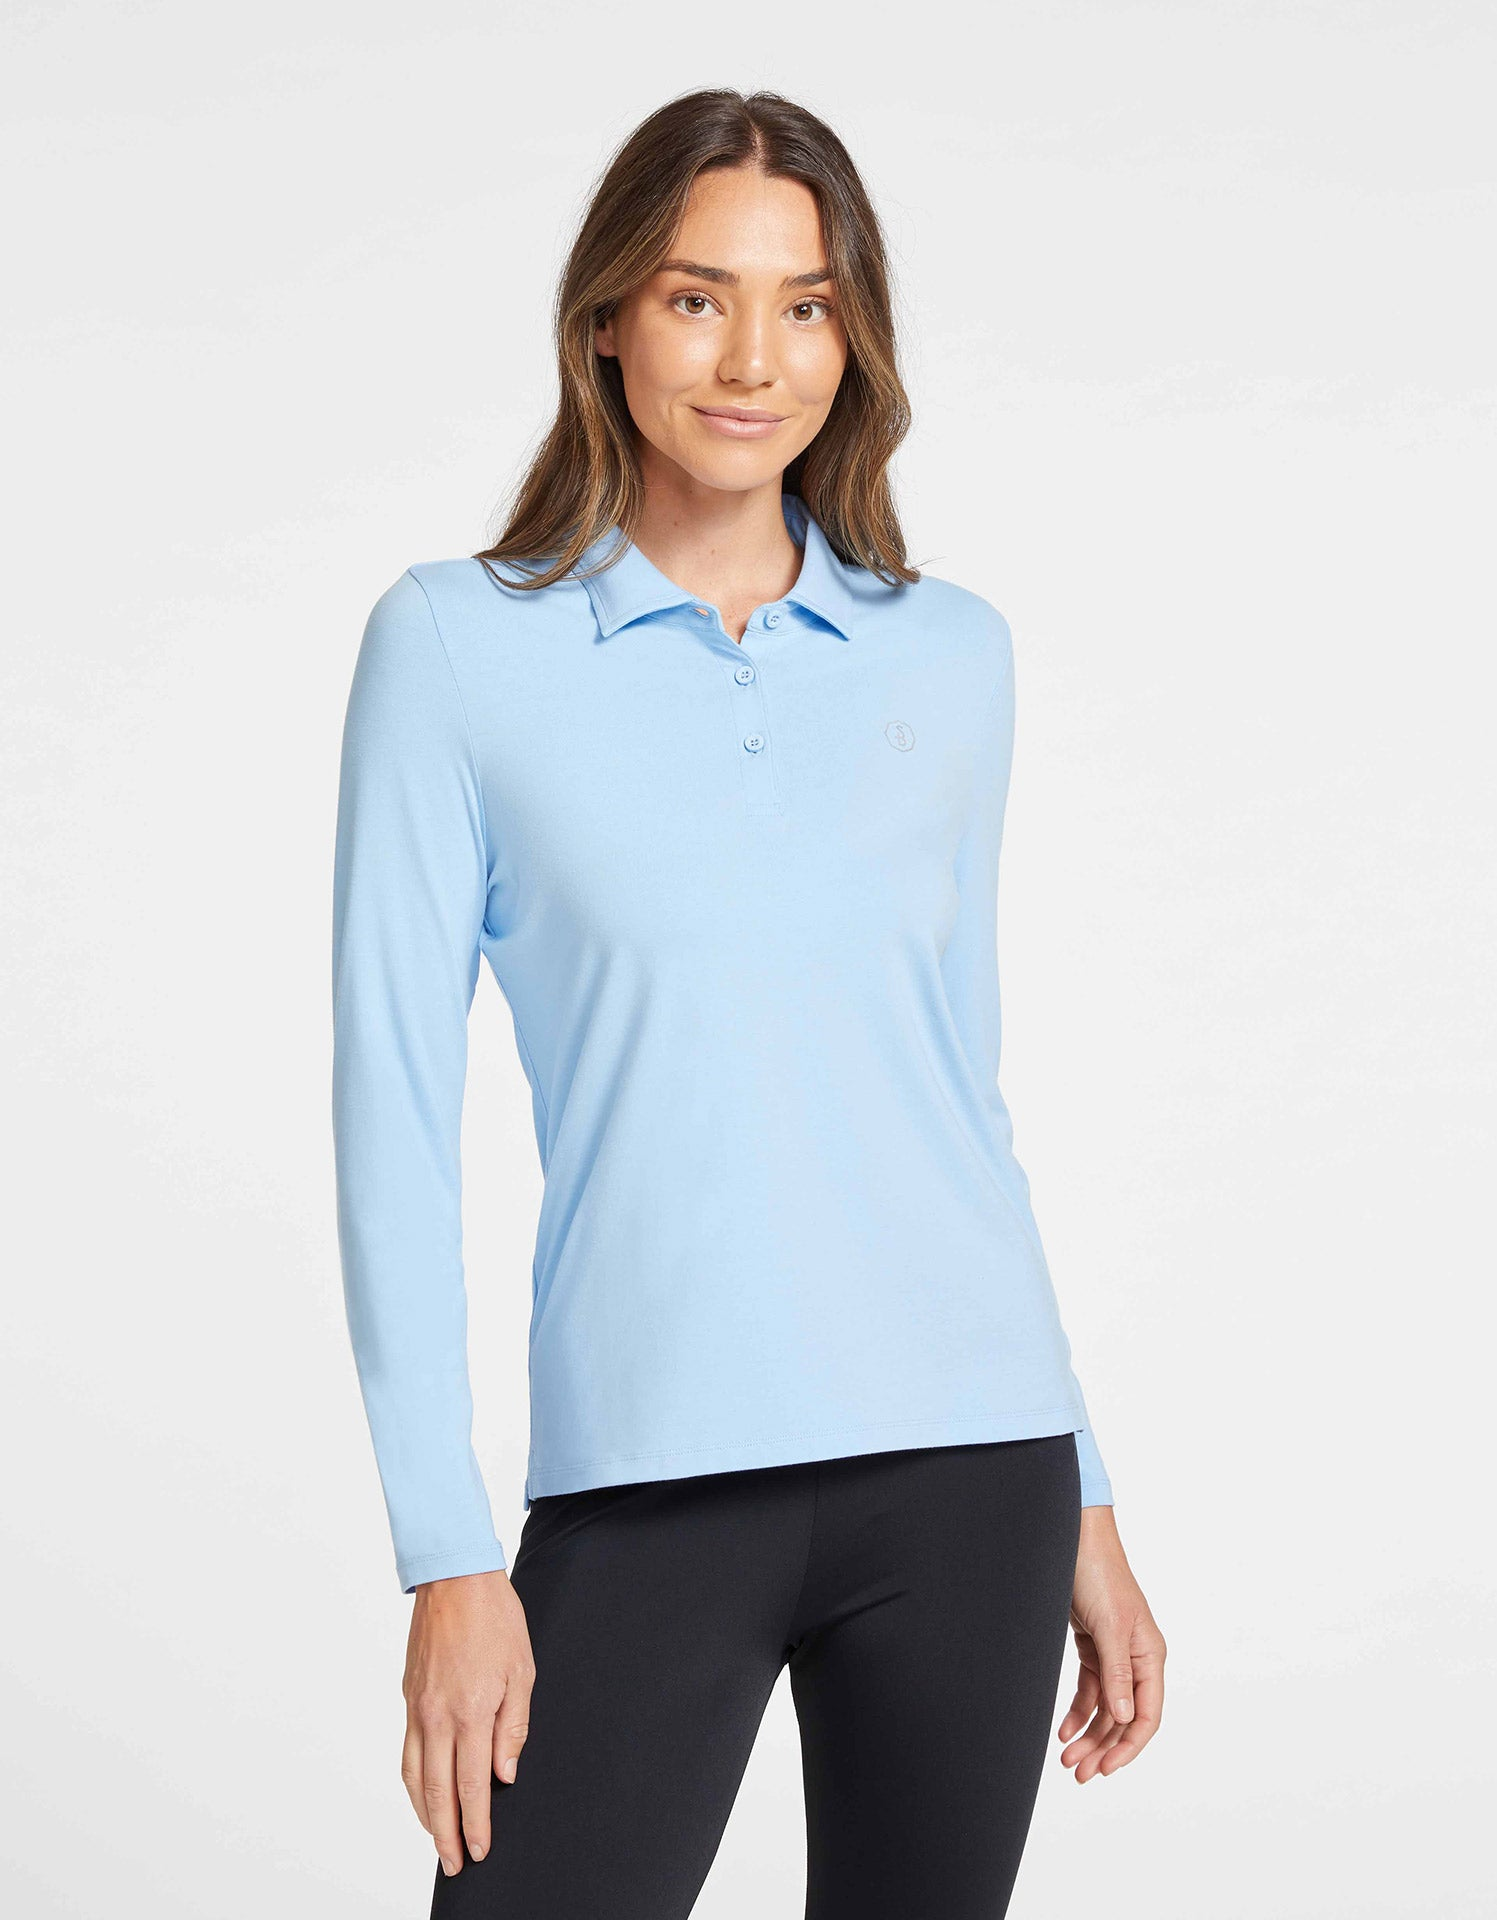 Solbari Sun Protection UPF50+ Women Long Sleeve Polo Shirt Sensitive Collection in Light Blue